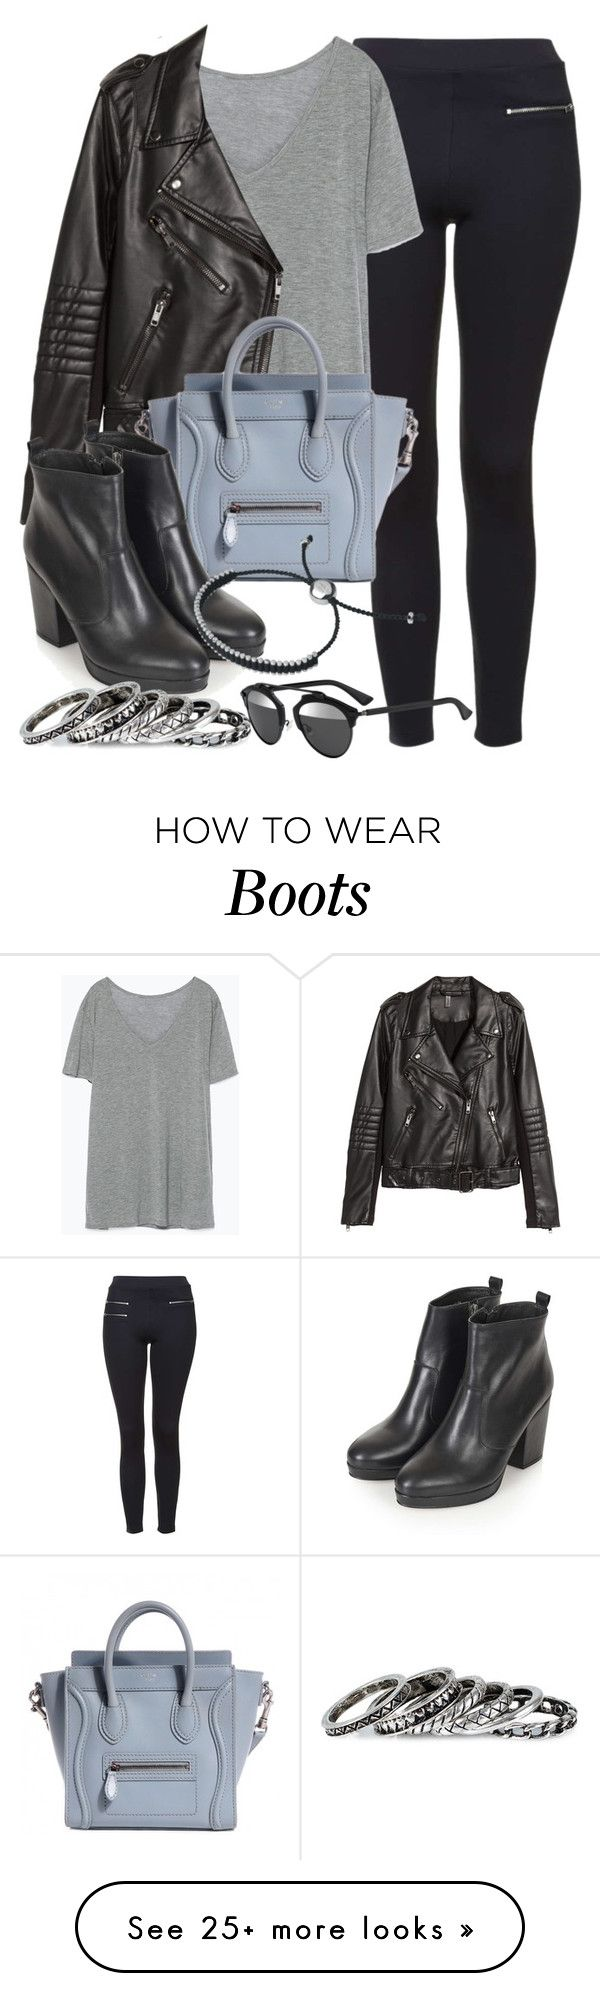 """""""Style #9863"""" by vany-alvarado on Polyvore featuring Topshop, Zara, H&M, Pieces, Links of London, Christian Dior, women's clothing, women, female and woman"""